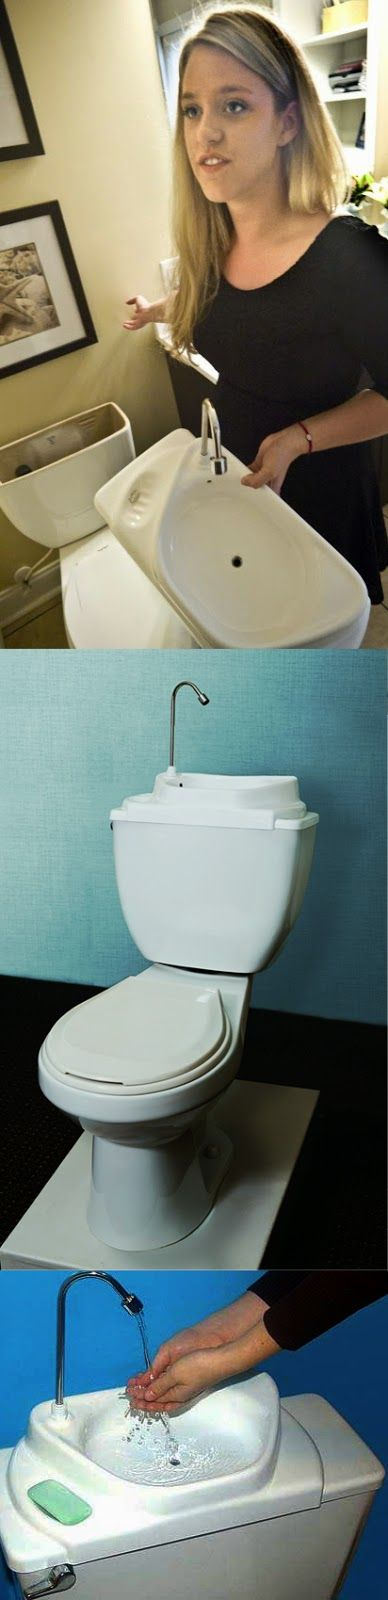 [Genius] Recycle Sink Water For Toilet Flush